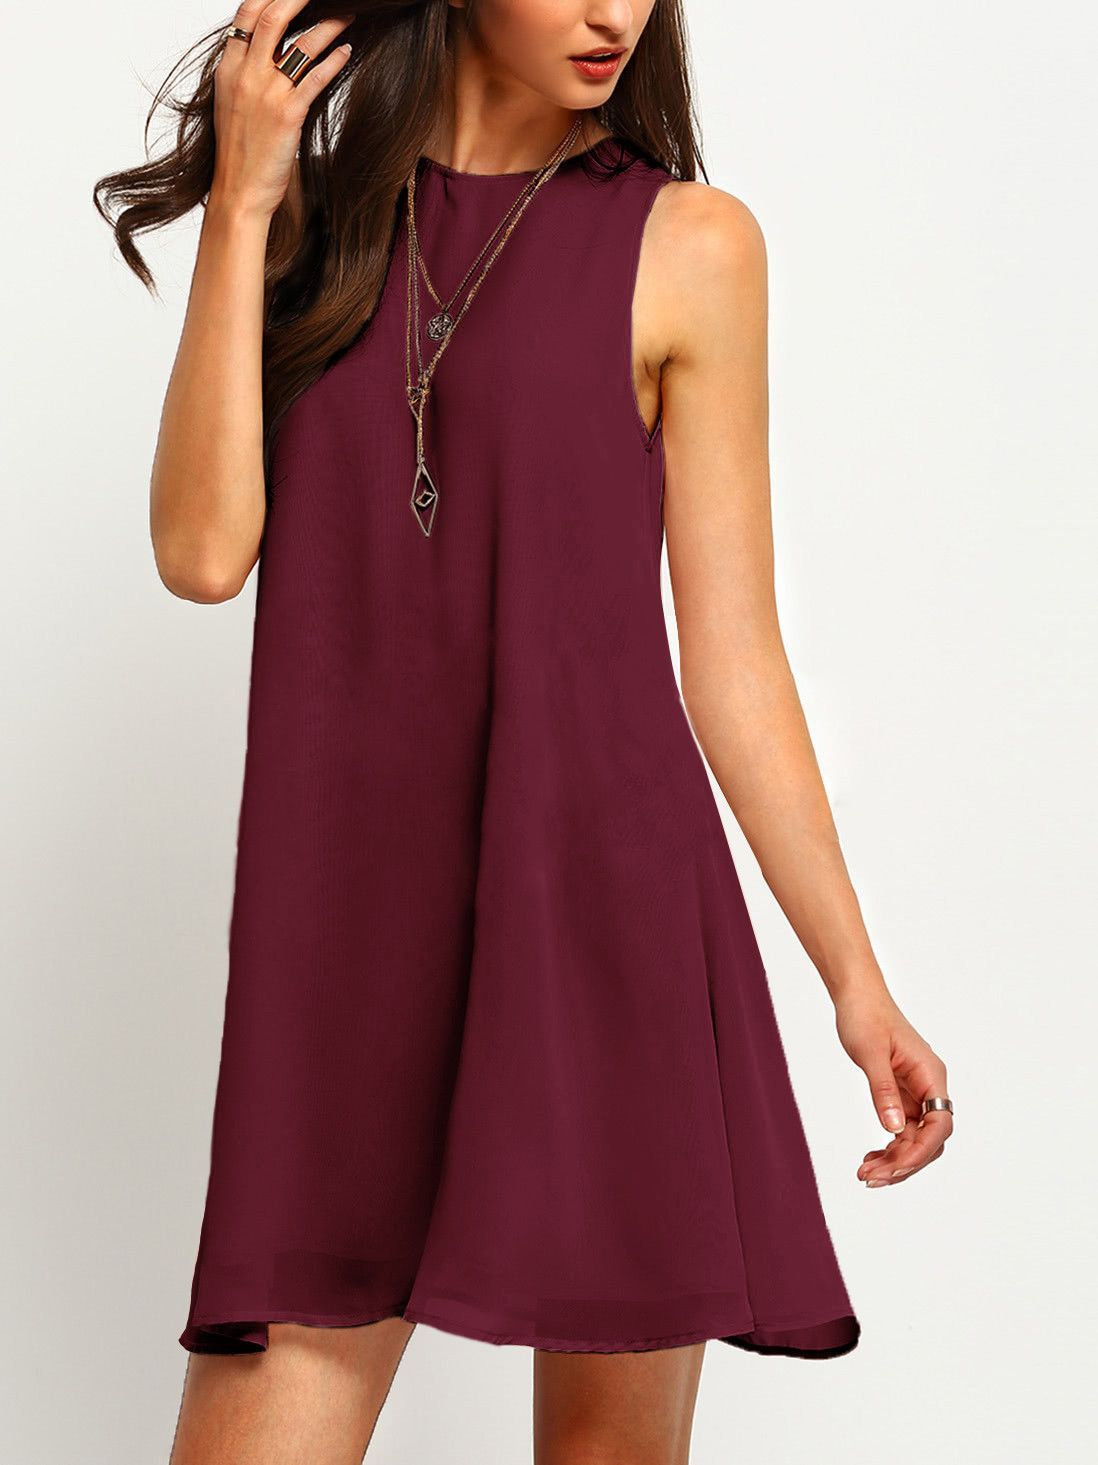 4d6859d4e5471 Material: Chiffon, 100% Polyester Color: Burgundy Pattern Type: Plain  Neckline: Round Neck Style: Casual, Work Type: Tank Silhouette: A Line  Decoration: Cut ...